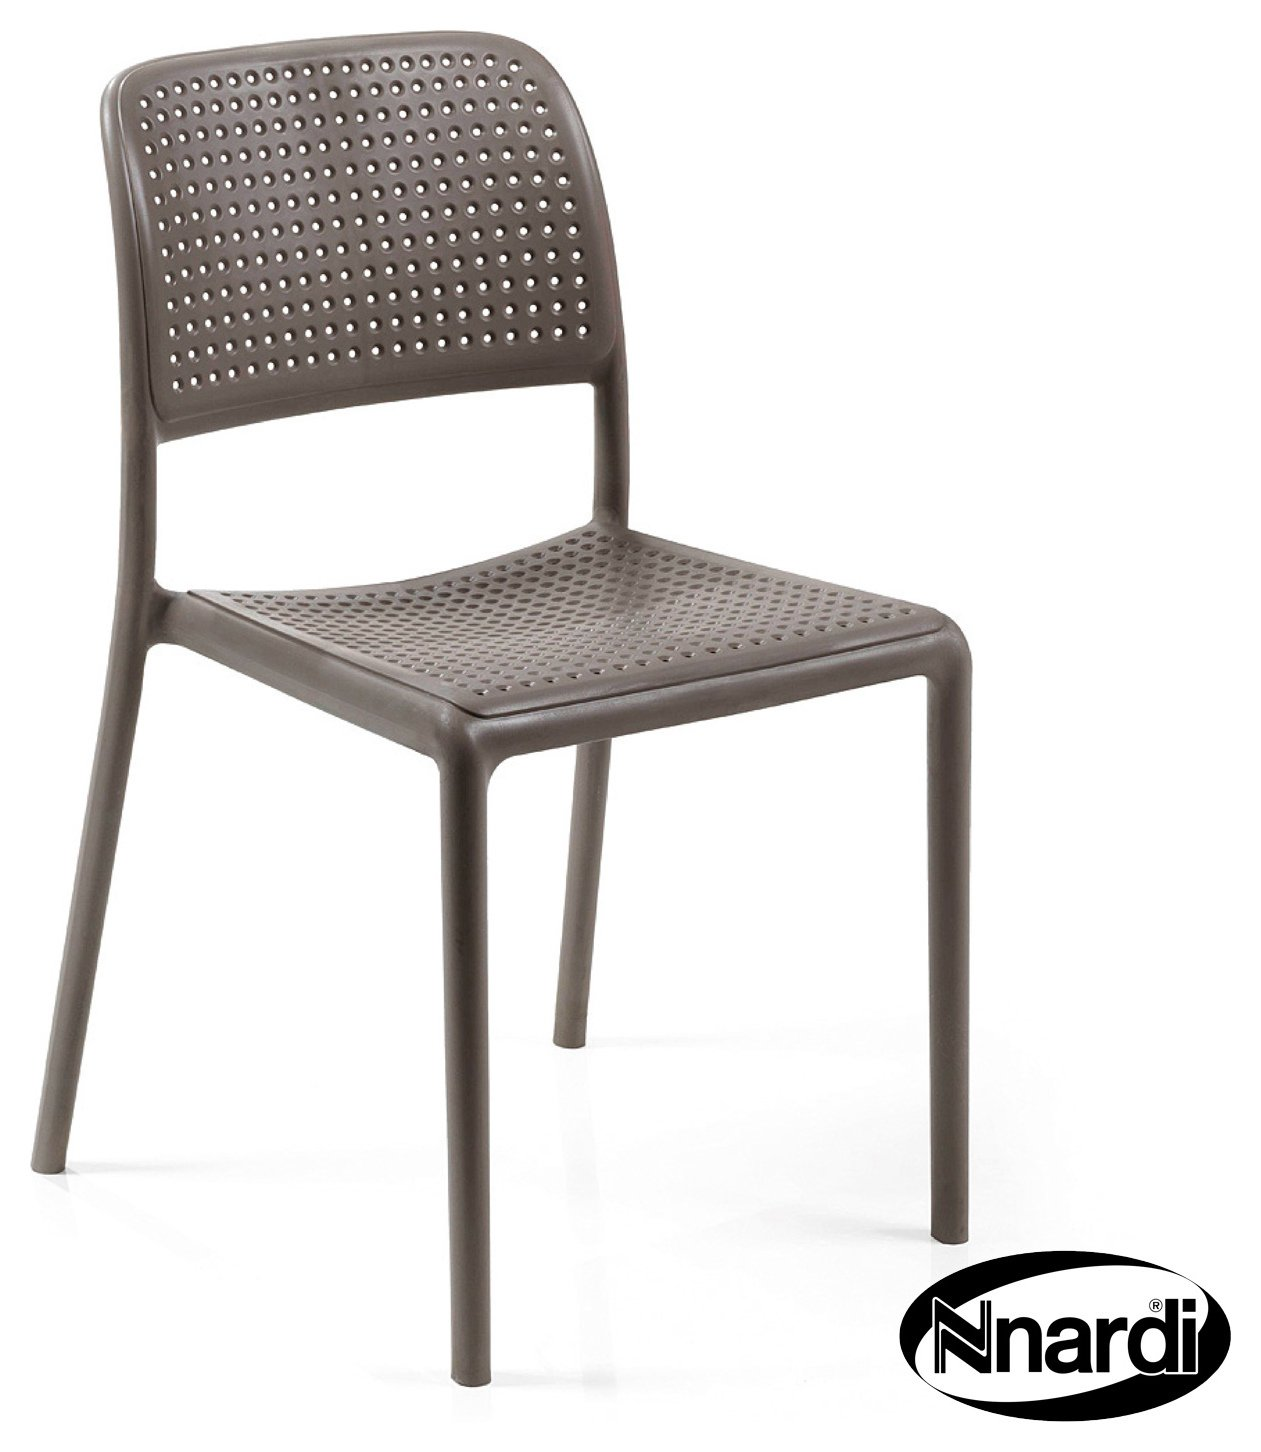 Nardi Turtle Dove Bistro Chair - Pack of 2. lowest price